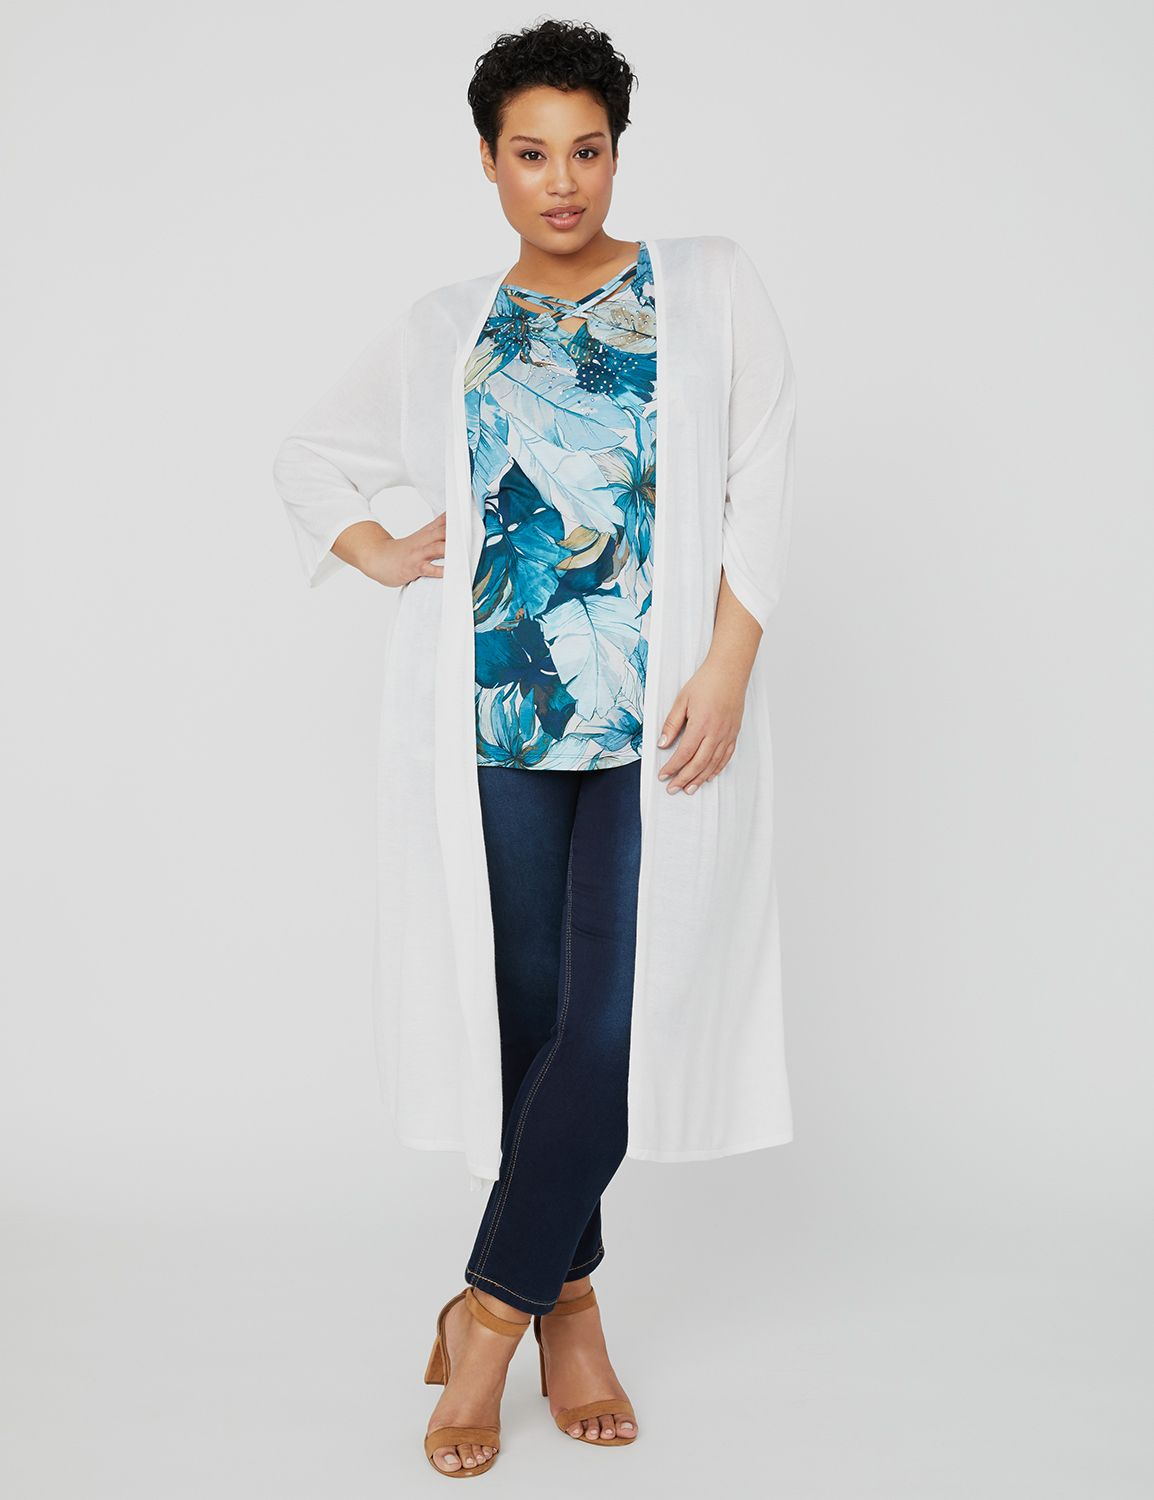 Ocean Waves Cardigan 1087803 Convertible Cardigan MP-300098486